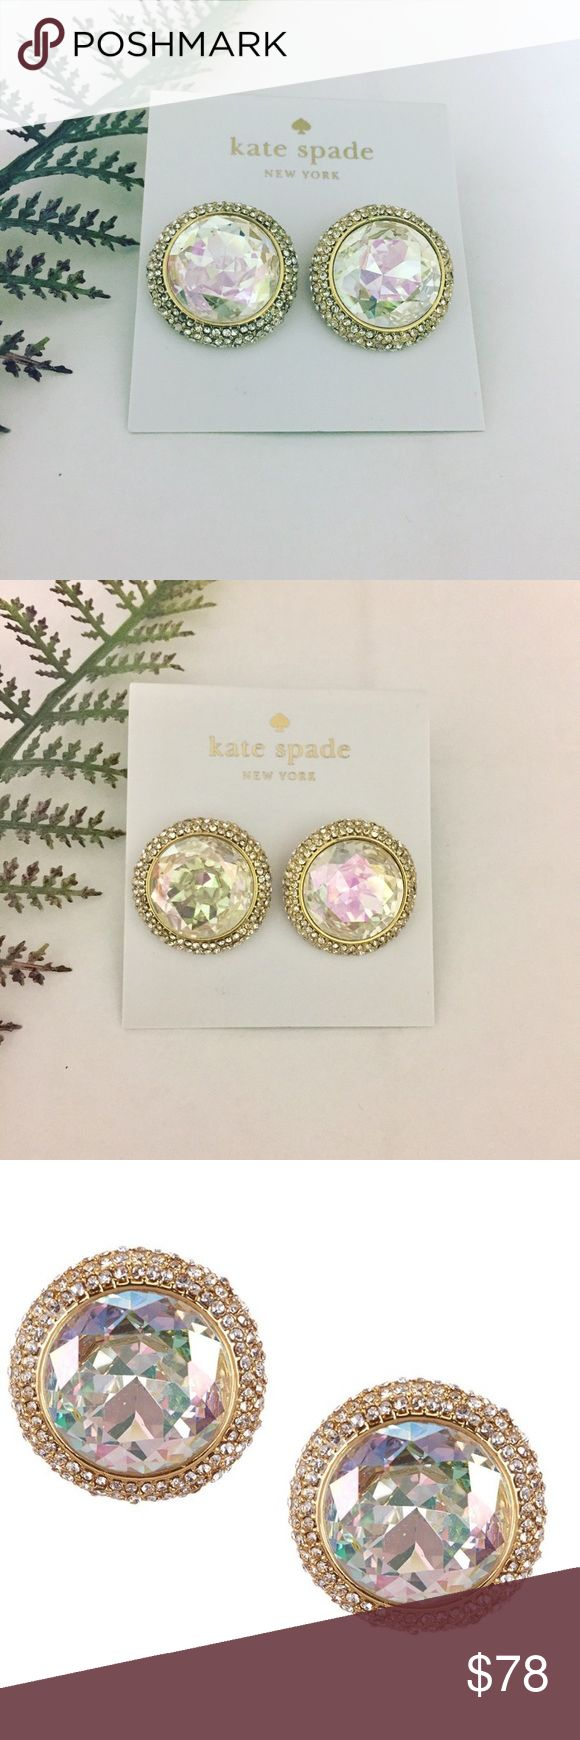 Kate Spade Aurora Borealis Earrings Brand new, authentic, with tags and pouch! Stunning aurora borealis crystal earrings surrounded by pave crystal halo. See other listing for matching necklace!   Bundle discount available!  Suggested User! 5 Star Rated Seller!  Same or next day shipper! No trades! ❌No half price offers kate spade Jewelry Earrings